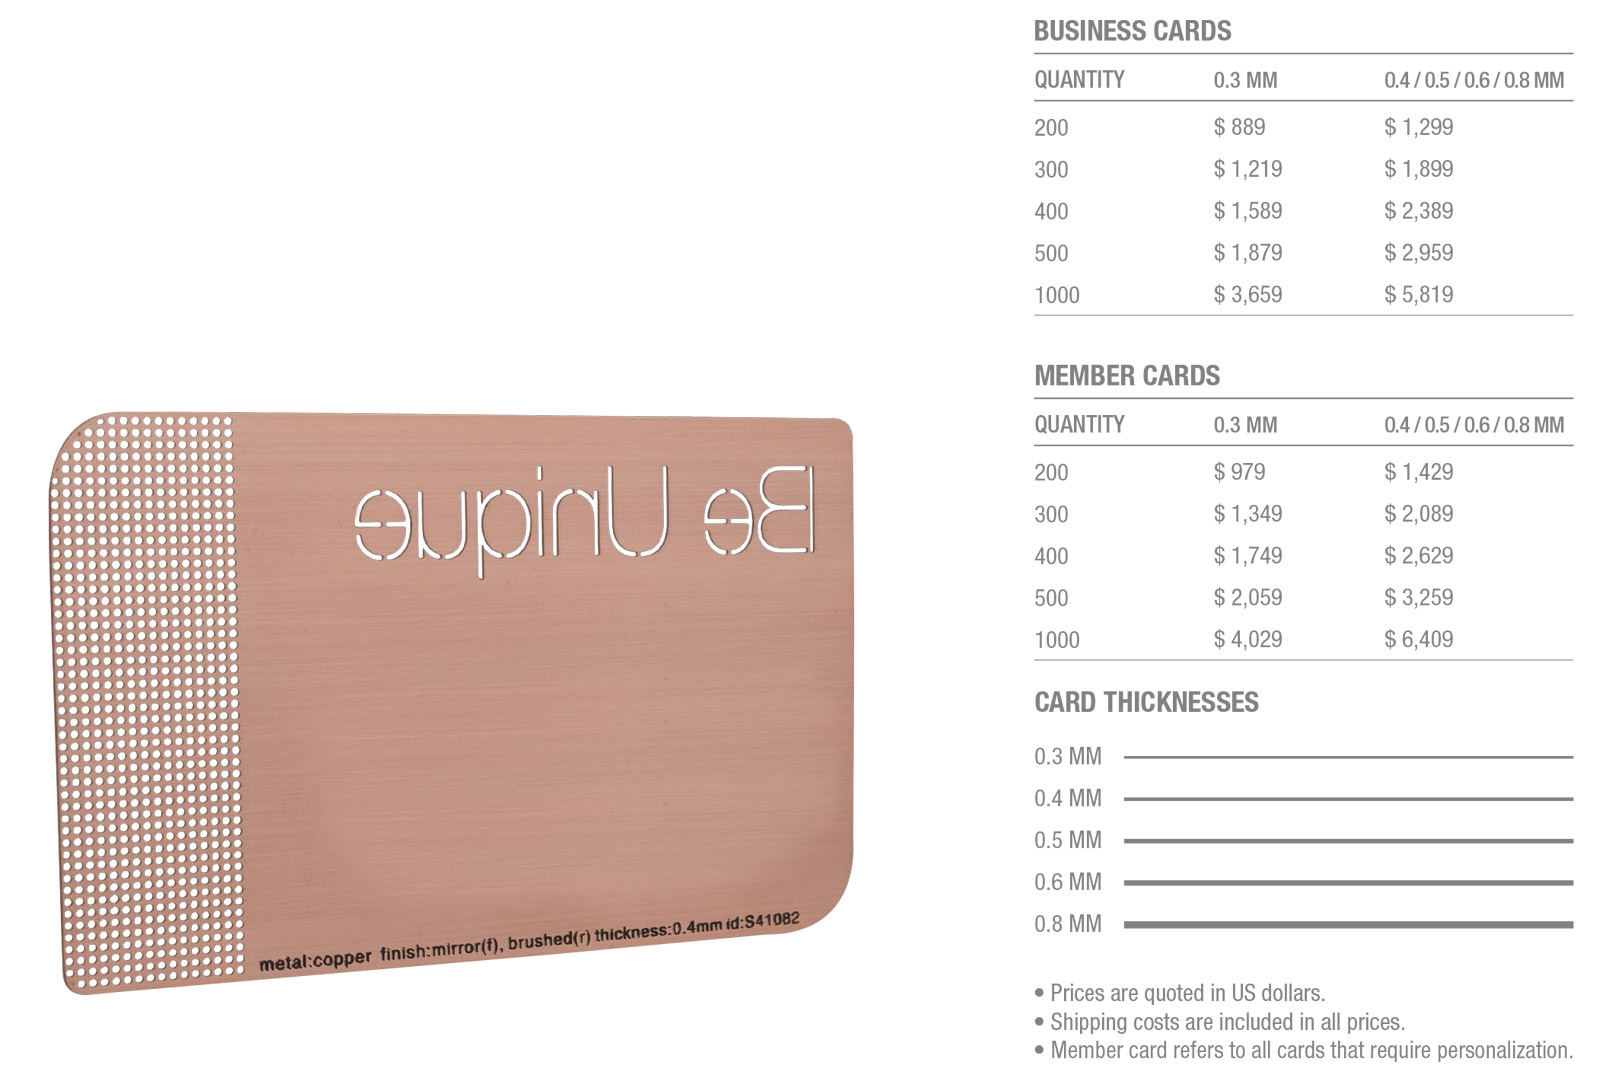 Copper-Brushed-Cards-Pricing-Table